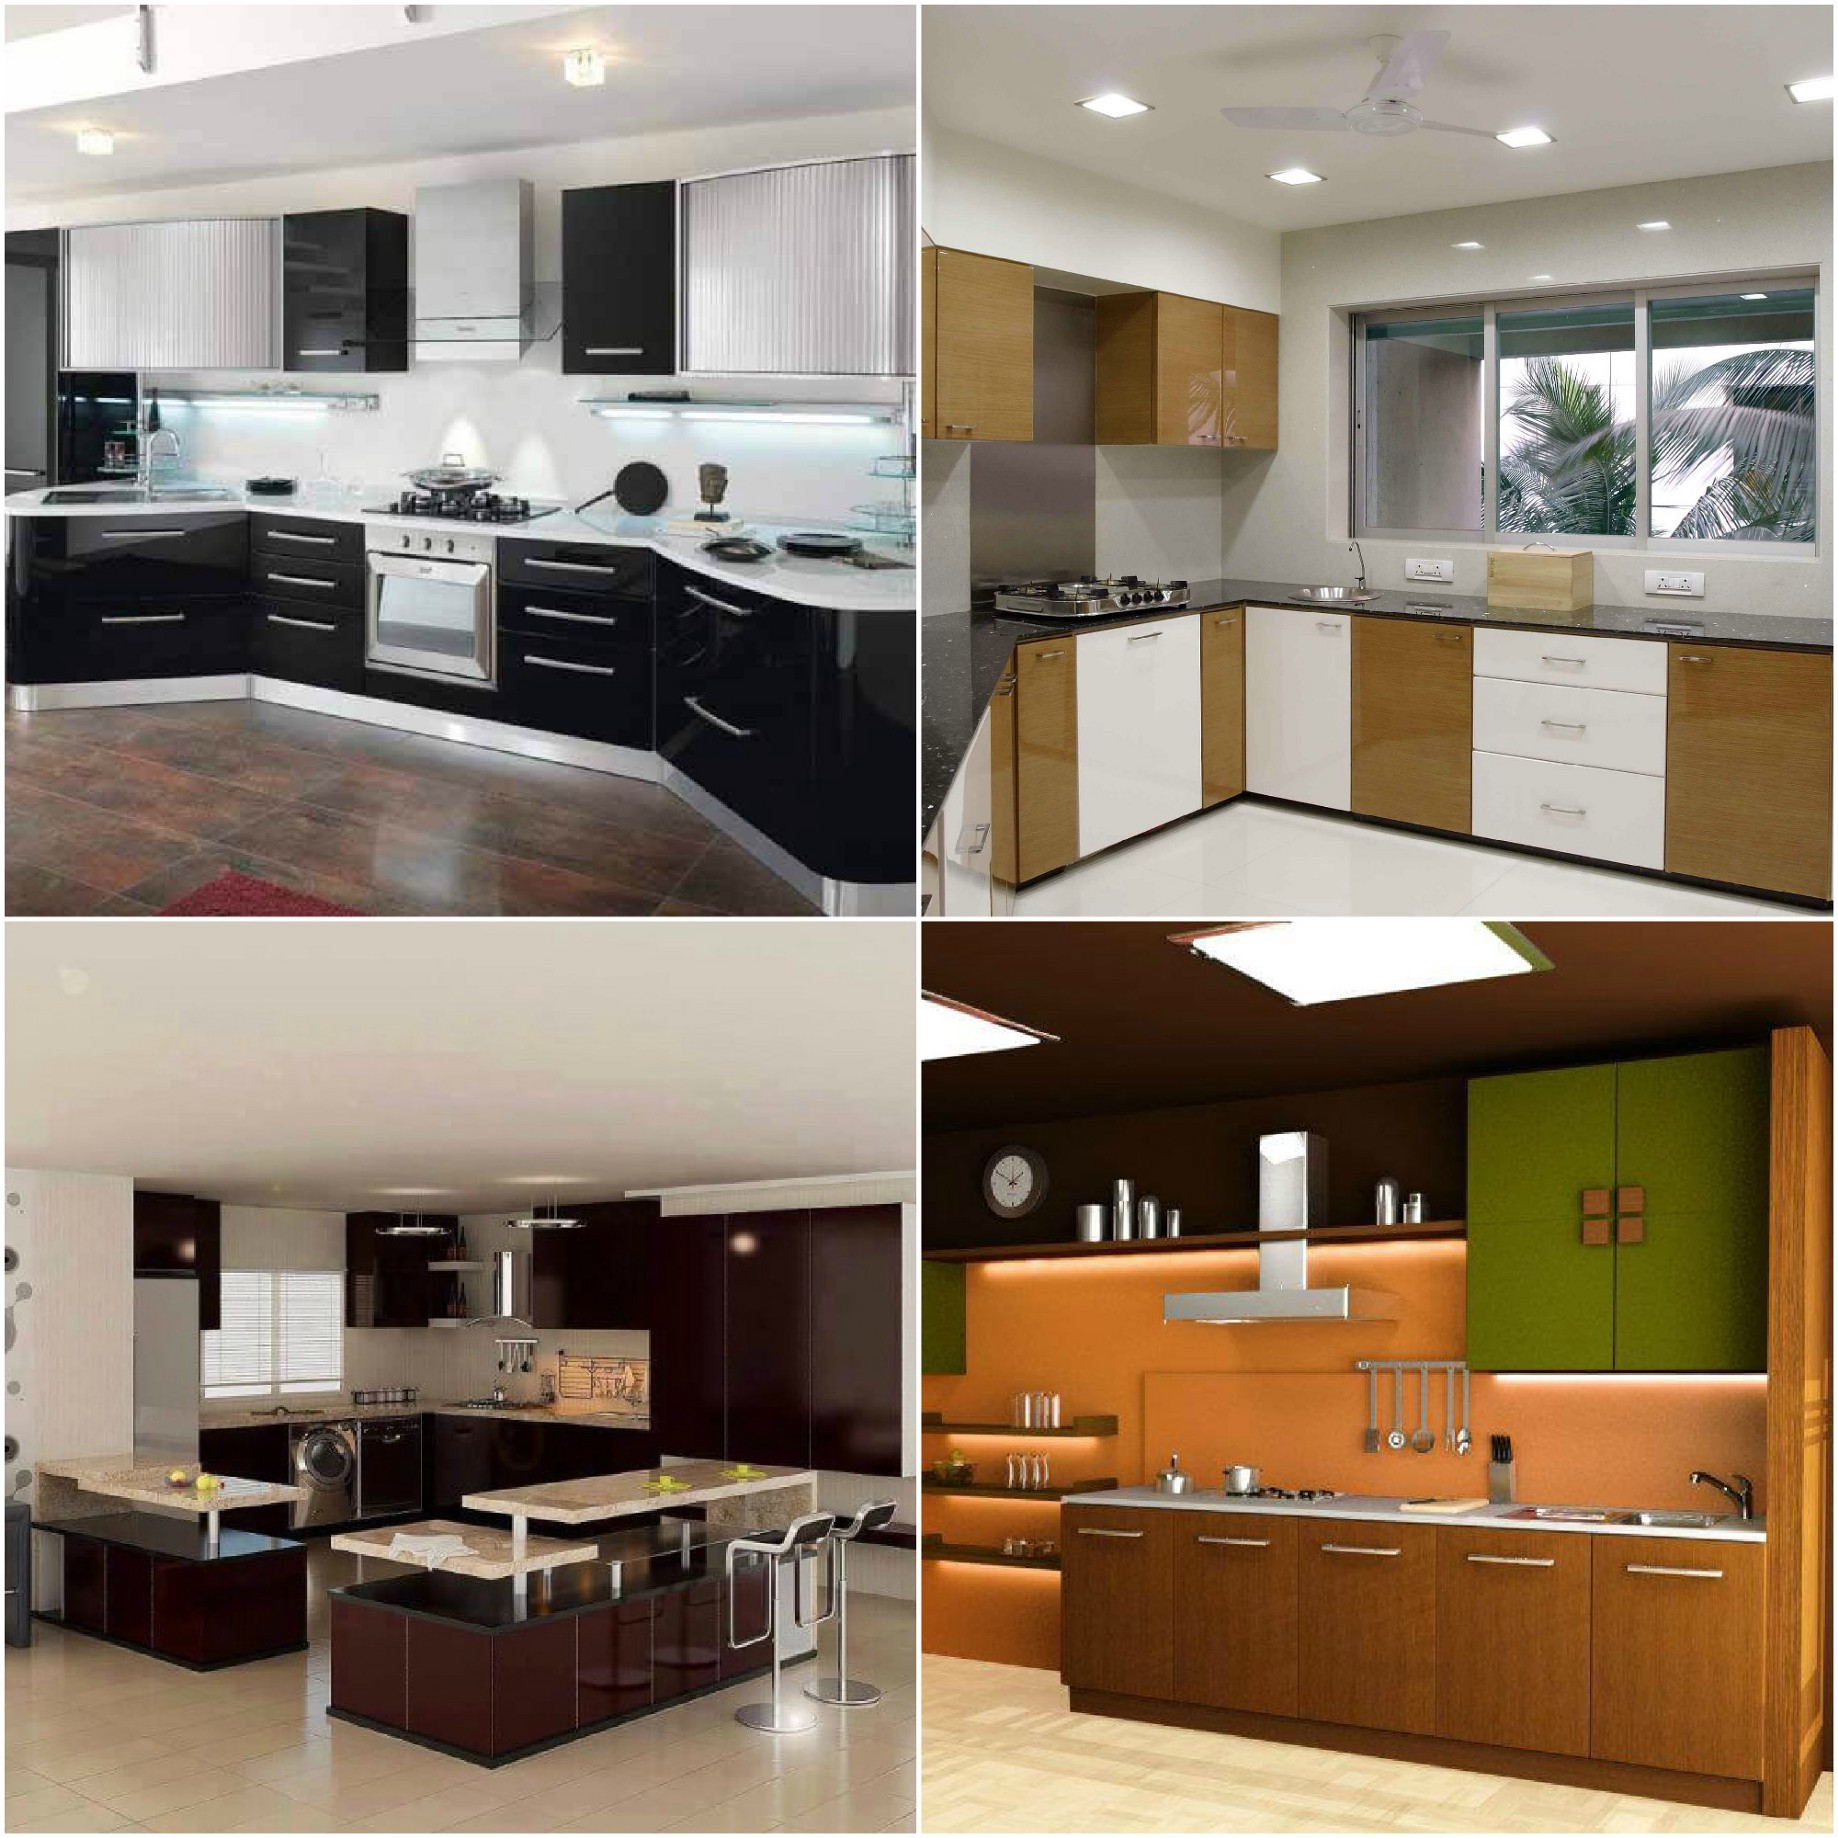 23 Modular Kitchen Design Ideas For Indian Homes Architectures